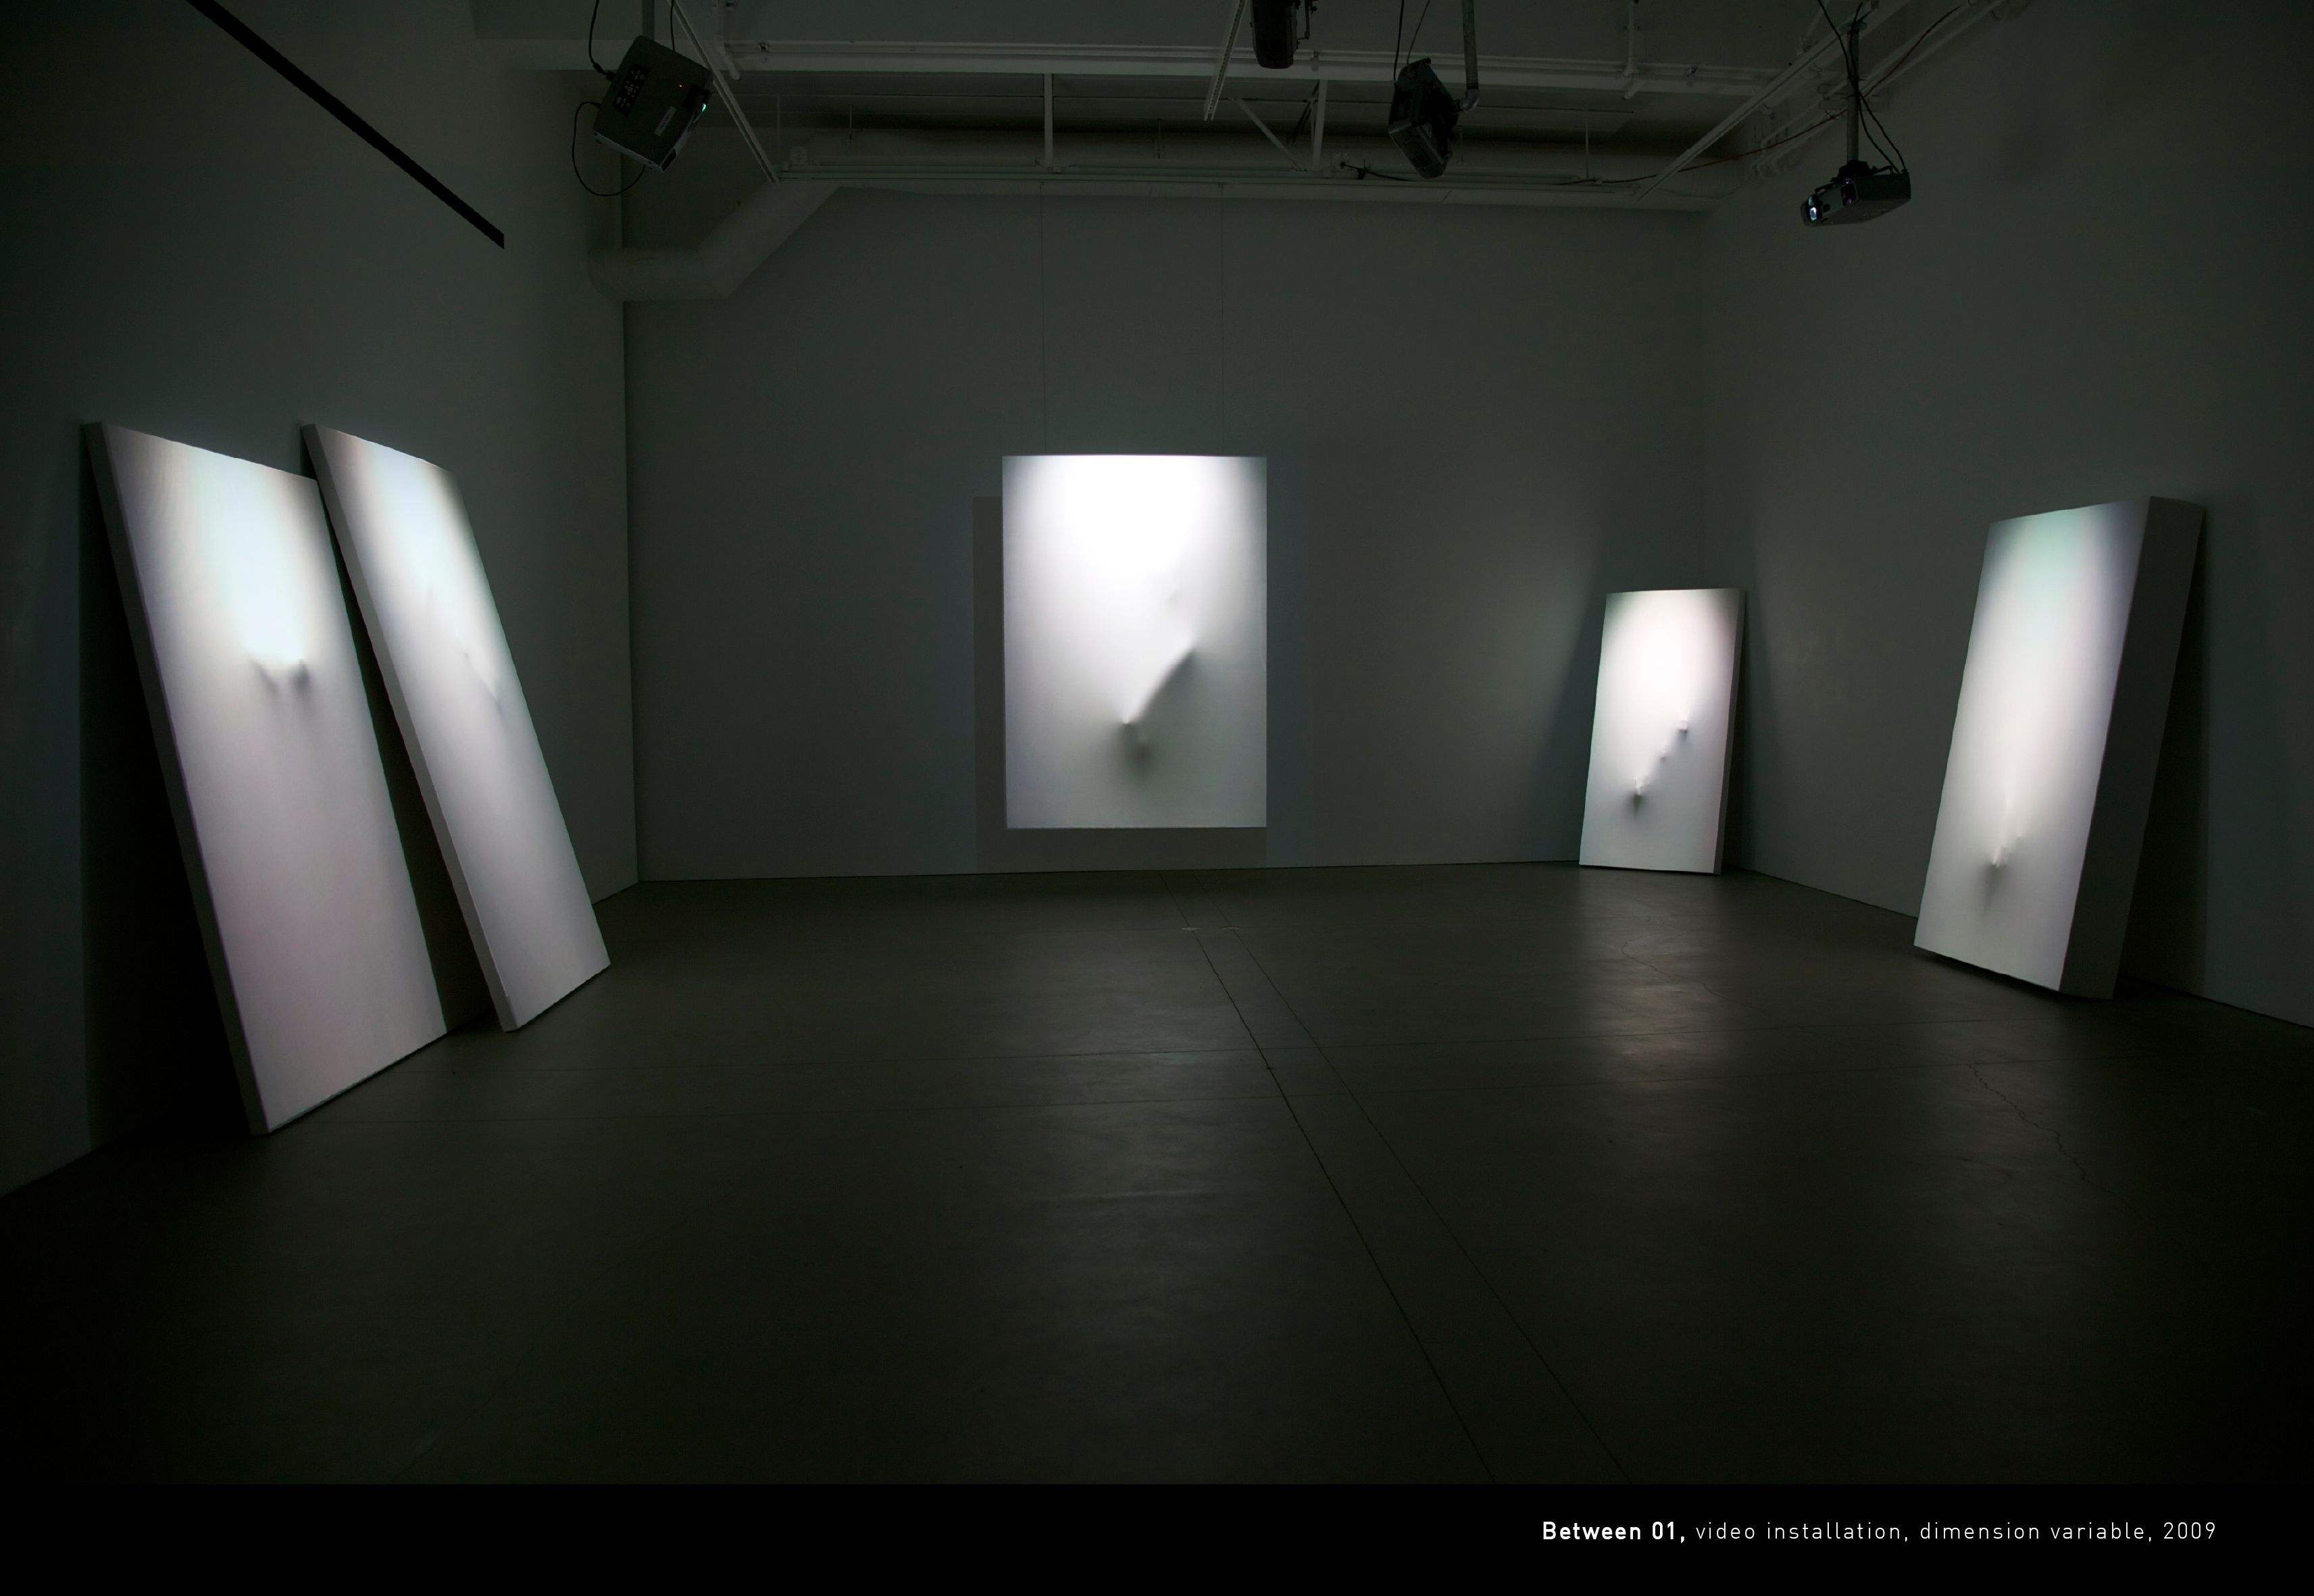 Between01, projection mapping installation, dimension variable, 2009 (Broad Art Center, LA, USA). 2009년 공근혜갤러리에서 열린 첫번째 개인전에서 이 작업을 선보였다.